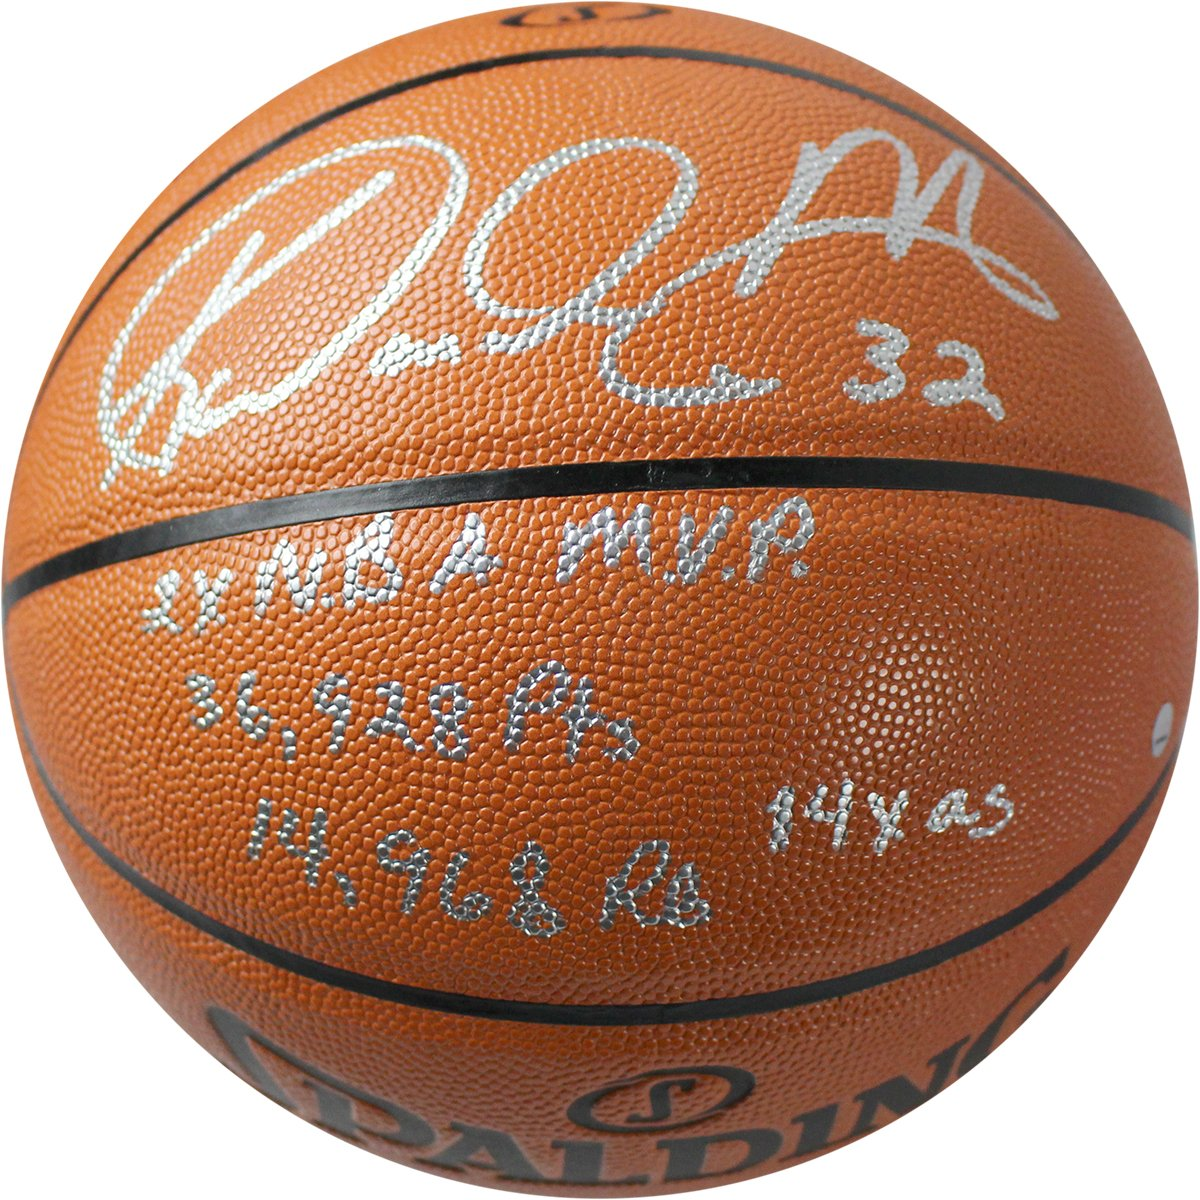 Karl Malone Signed Spalding NBA Indoor Outdoor Basketball w  Mailman 58aba18d1